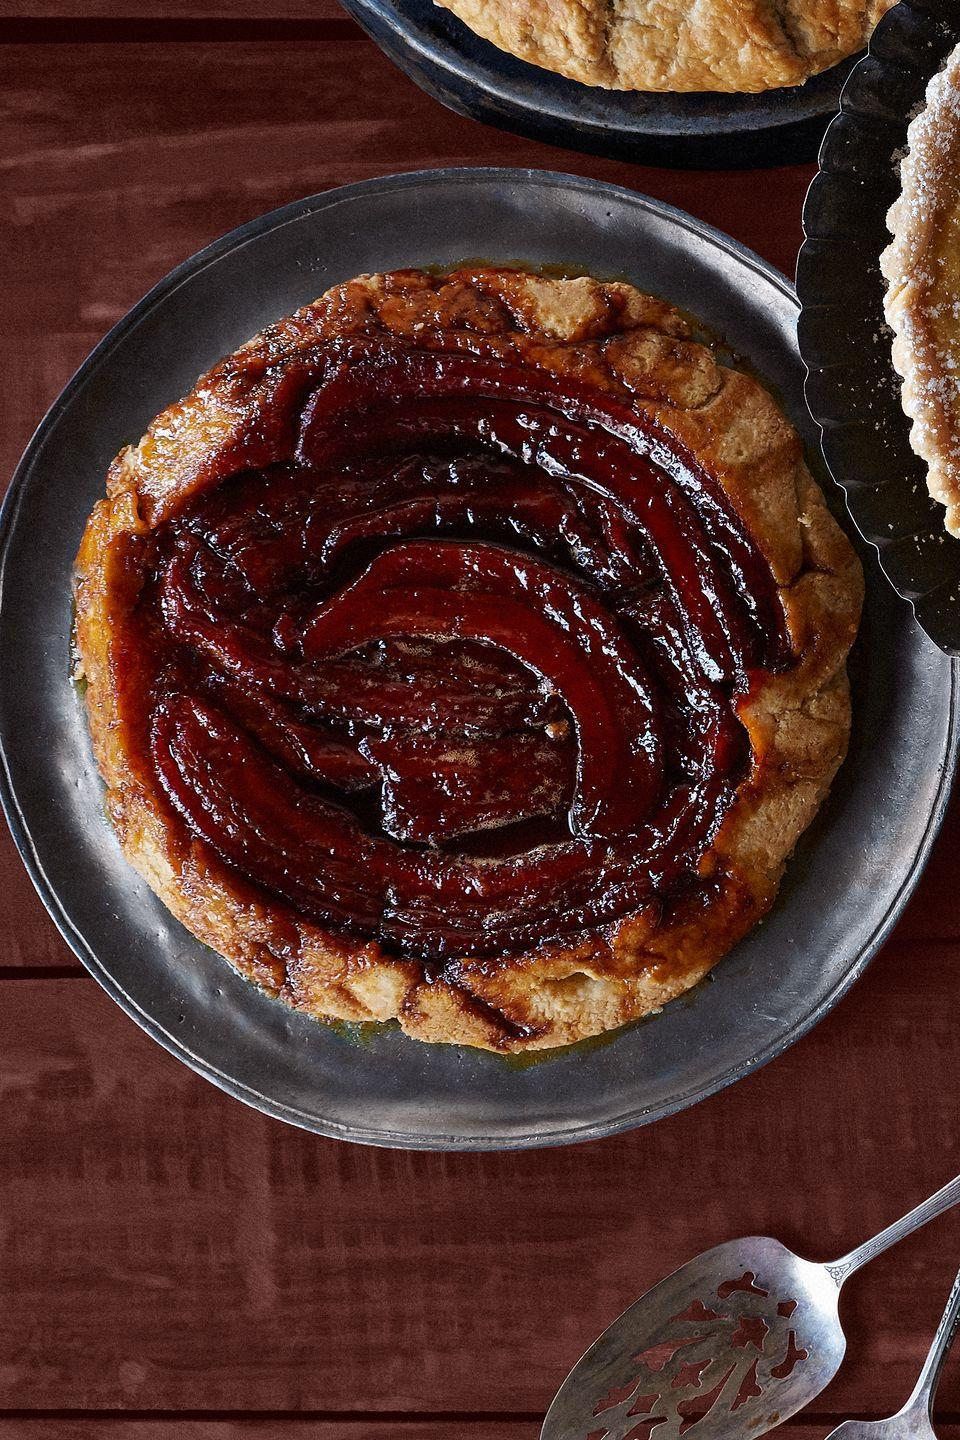 """<p>This skillet dessert will impress your guests with its hearty dose of banana flavor.</p><p><span><strong><a href=""""https://www.countryliving.com/food-drinks/recipes/a36556/banana-tart-tatin/"""" rel=""""nofollow noopener"""" target=""""_blank"""" data-ylk=""""slk:Get the recipe"""" class=""""link rapid-noclick-resp"""">Get the recipe</a>.</strong></span><br></p>"""